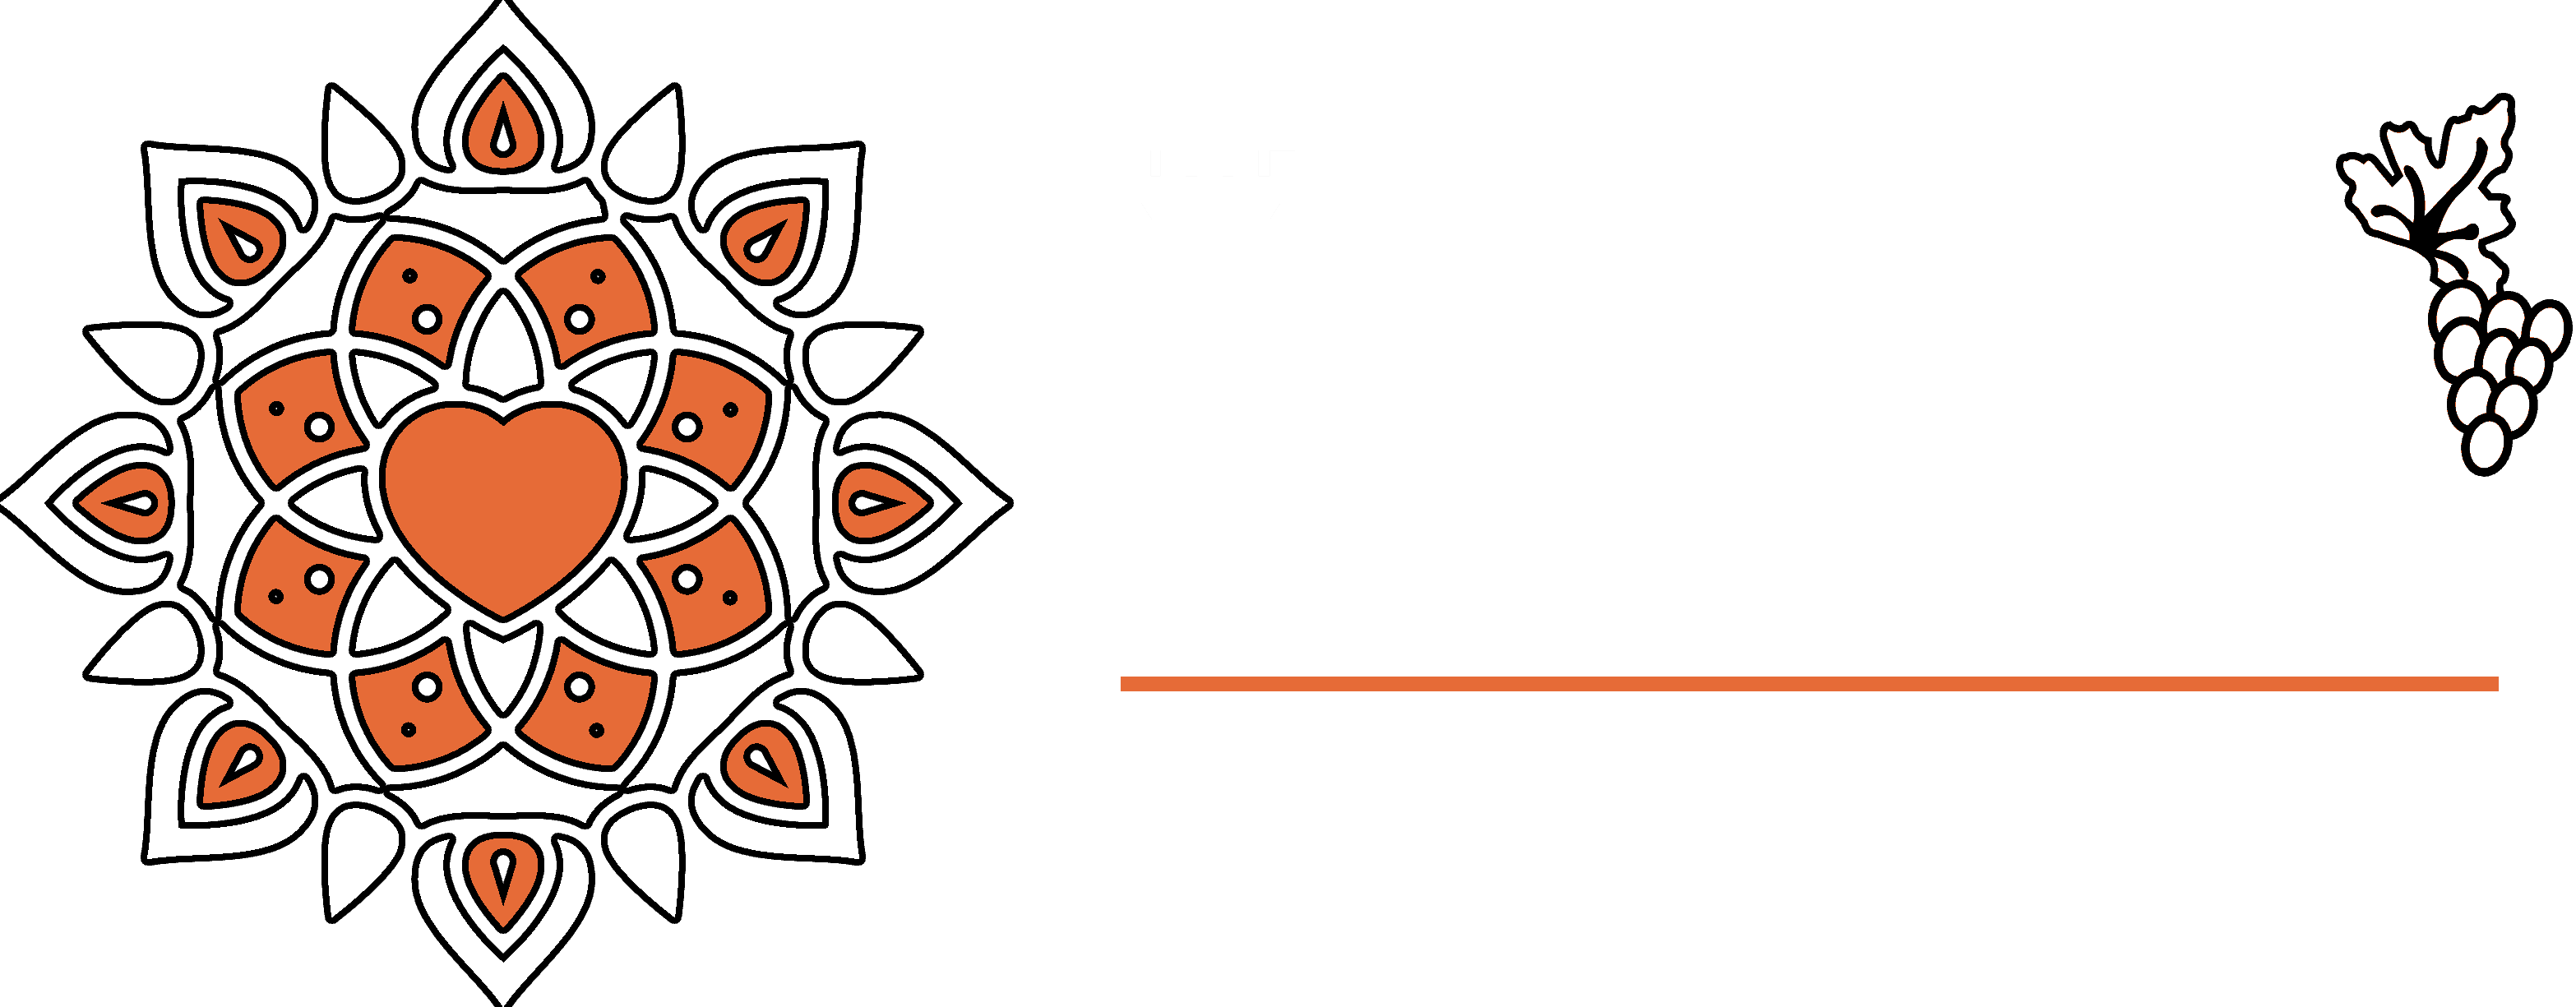 Logotipo Do Site